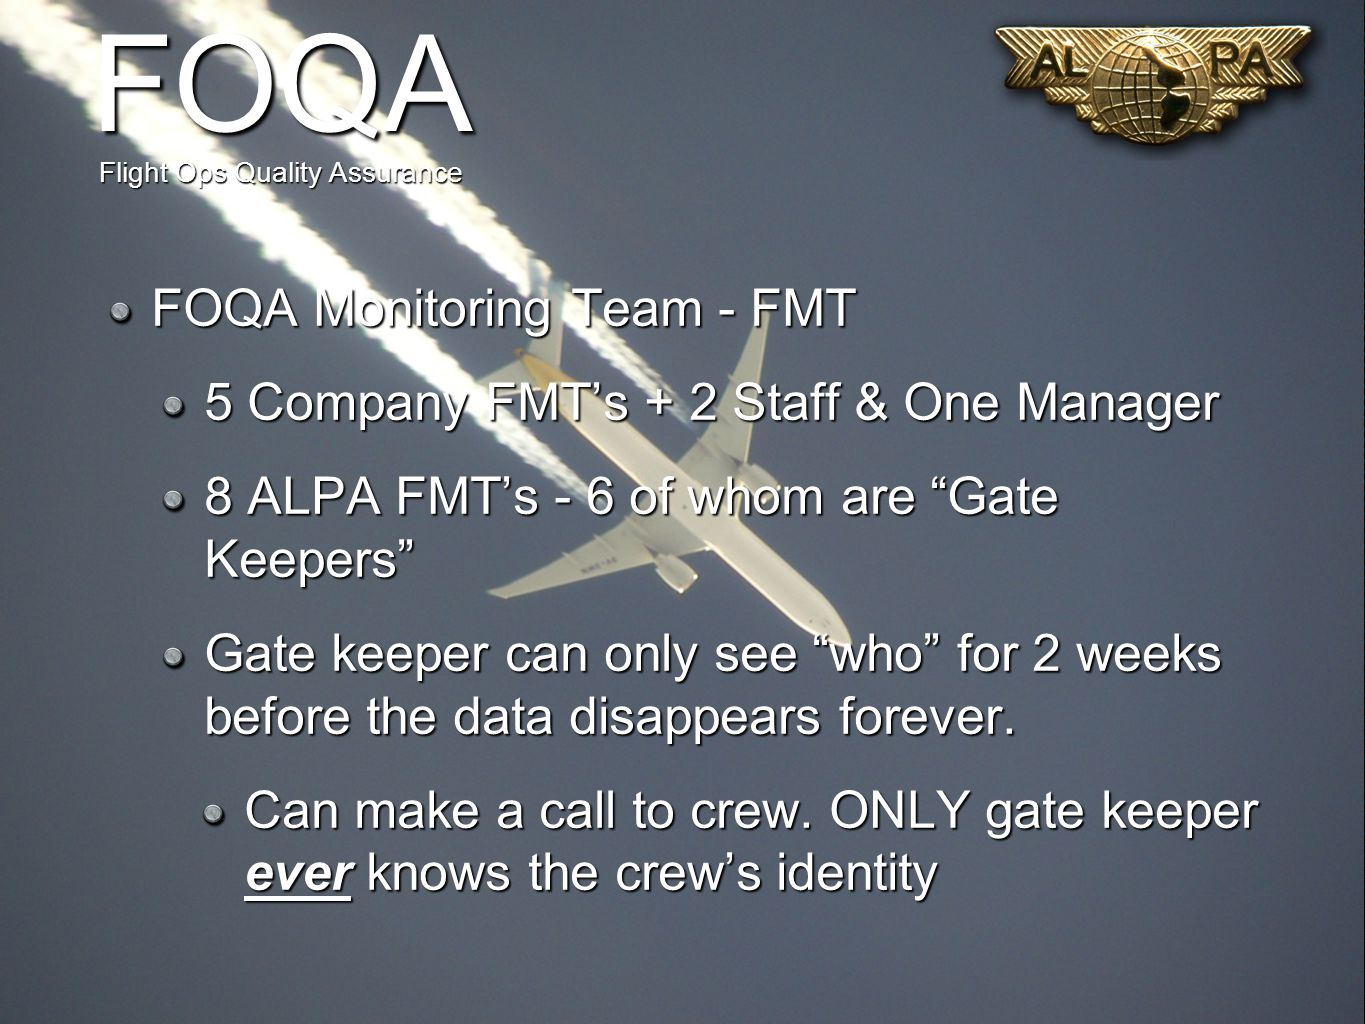 FOQA Flight Ops Quality Assurance FOQA Monitoring Team - FMT 5 Company FMT's + 2 Staff & One Manager 8 ALPA FMT's - 6 of whom are Gate Keepers Gate keeper can only see who for 2 weeks before the data disappears forever.